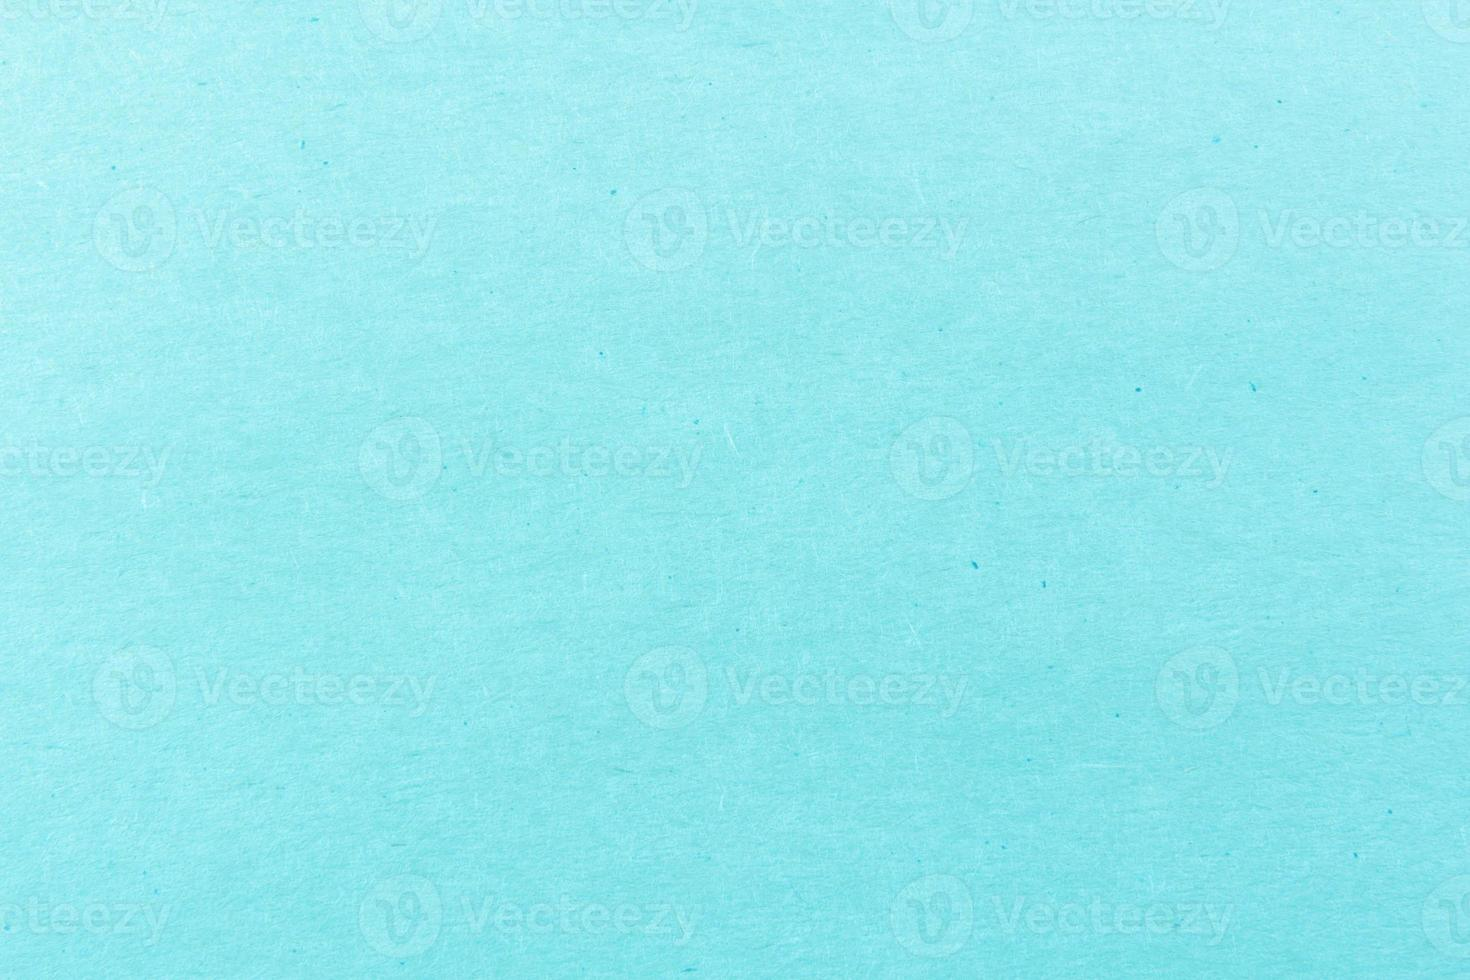 Close-up shot of light blue paper texture pattern for background photo